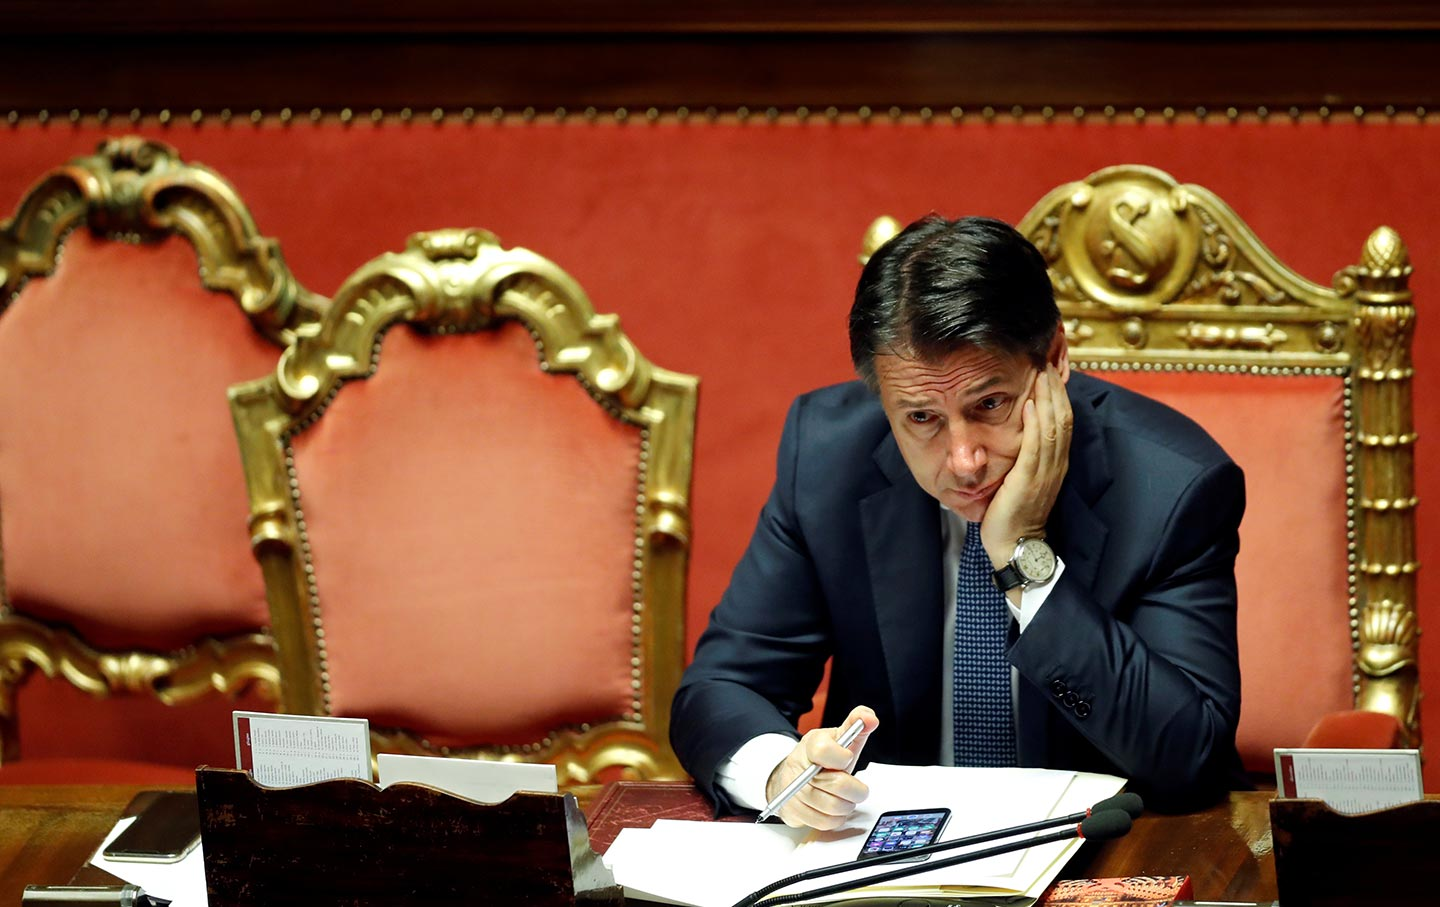 Italy's Government Completely Broke Down and Nothing Changed